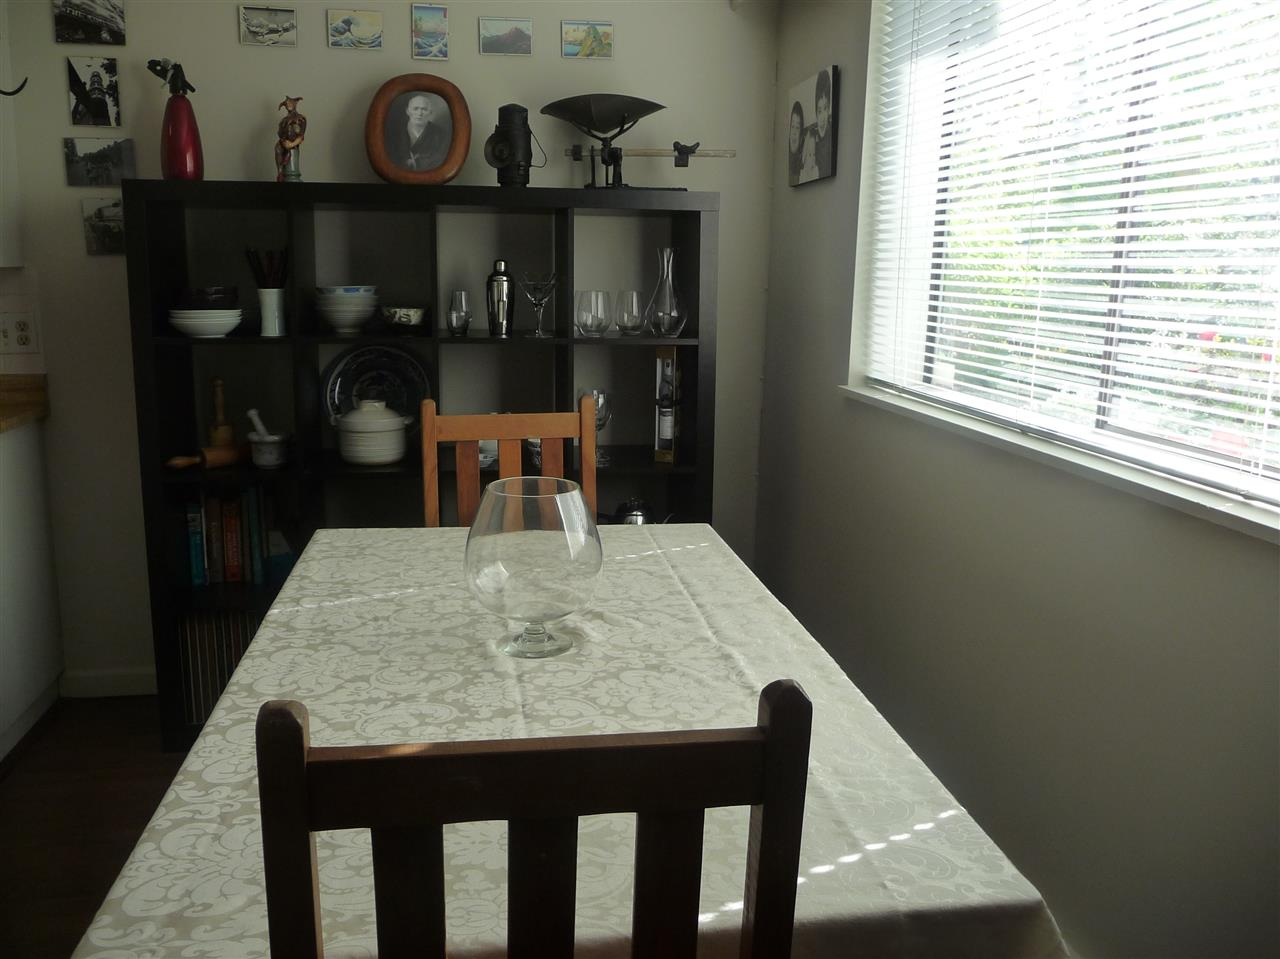 Photo 4: 103 2910 ONTARIO STREET in Vancouver: Mount Pleasant VE Condo for sale (Vancouver East)  : MLS® # R2058838